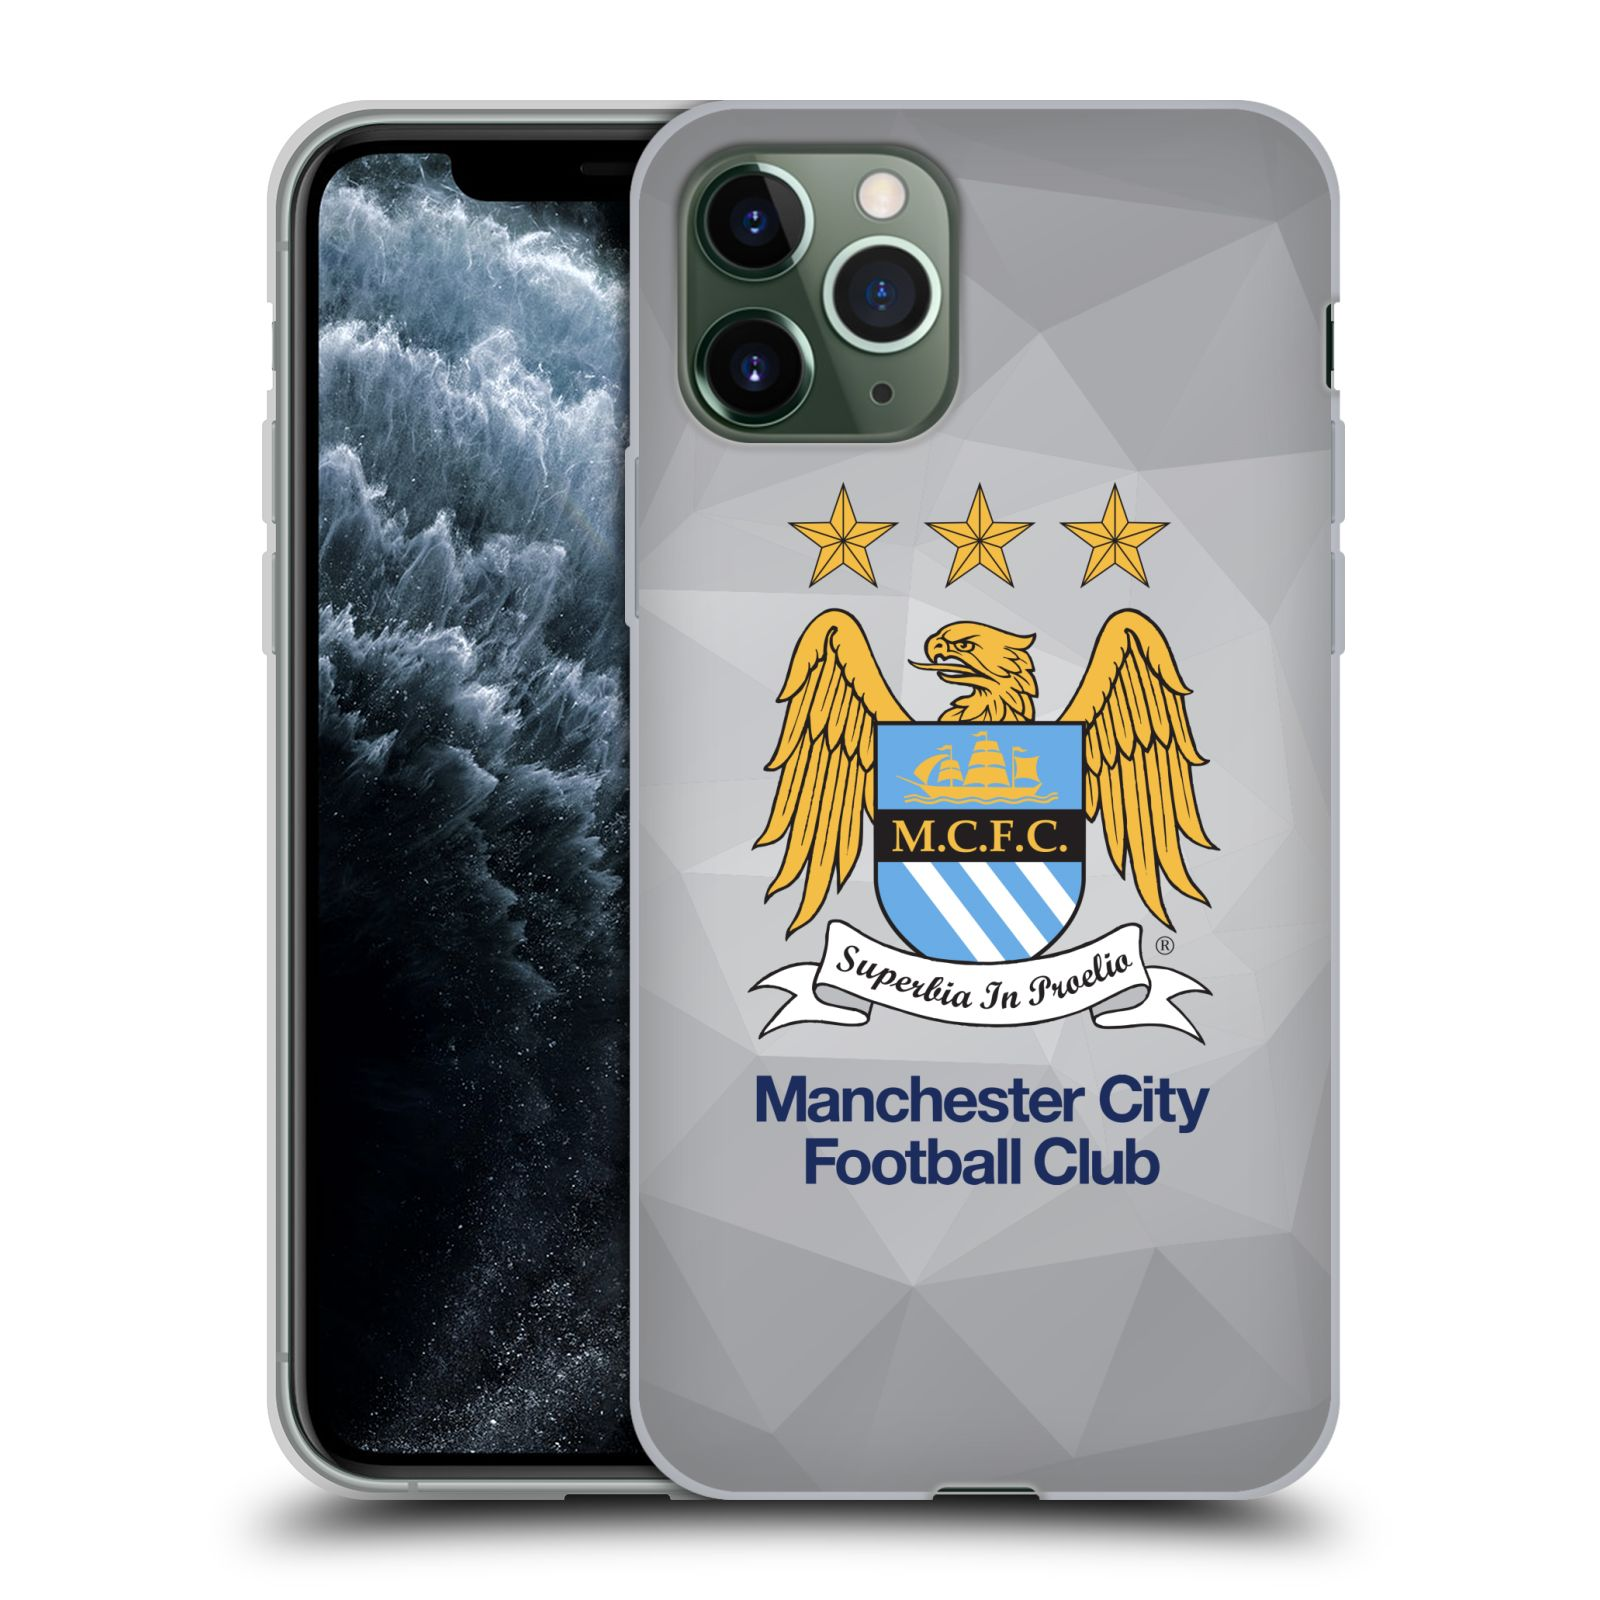 ultratenký obal na iphone x | Silikonové pouzdro na mobil Apple iPhone 11 Pro - Head Case - Manchester City FC - Football Club